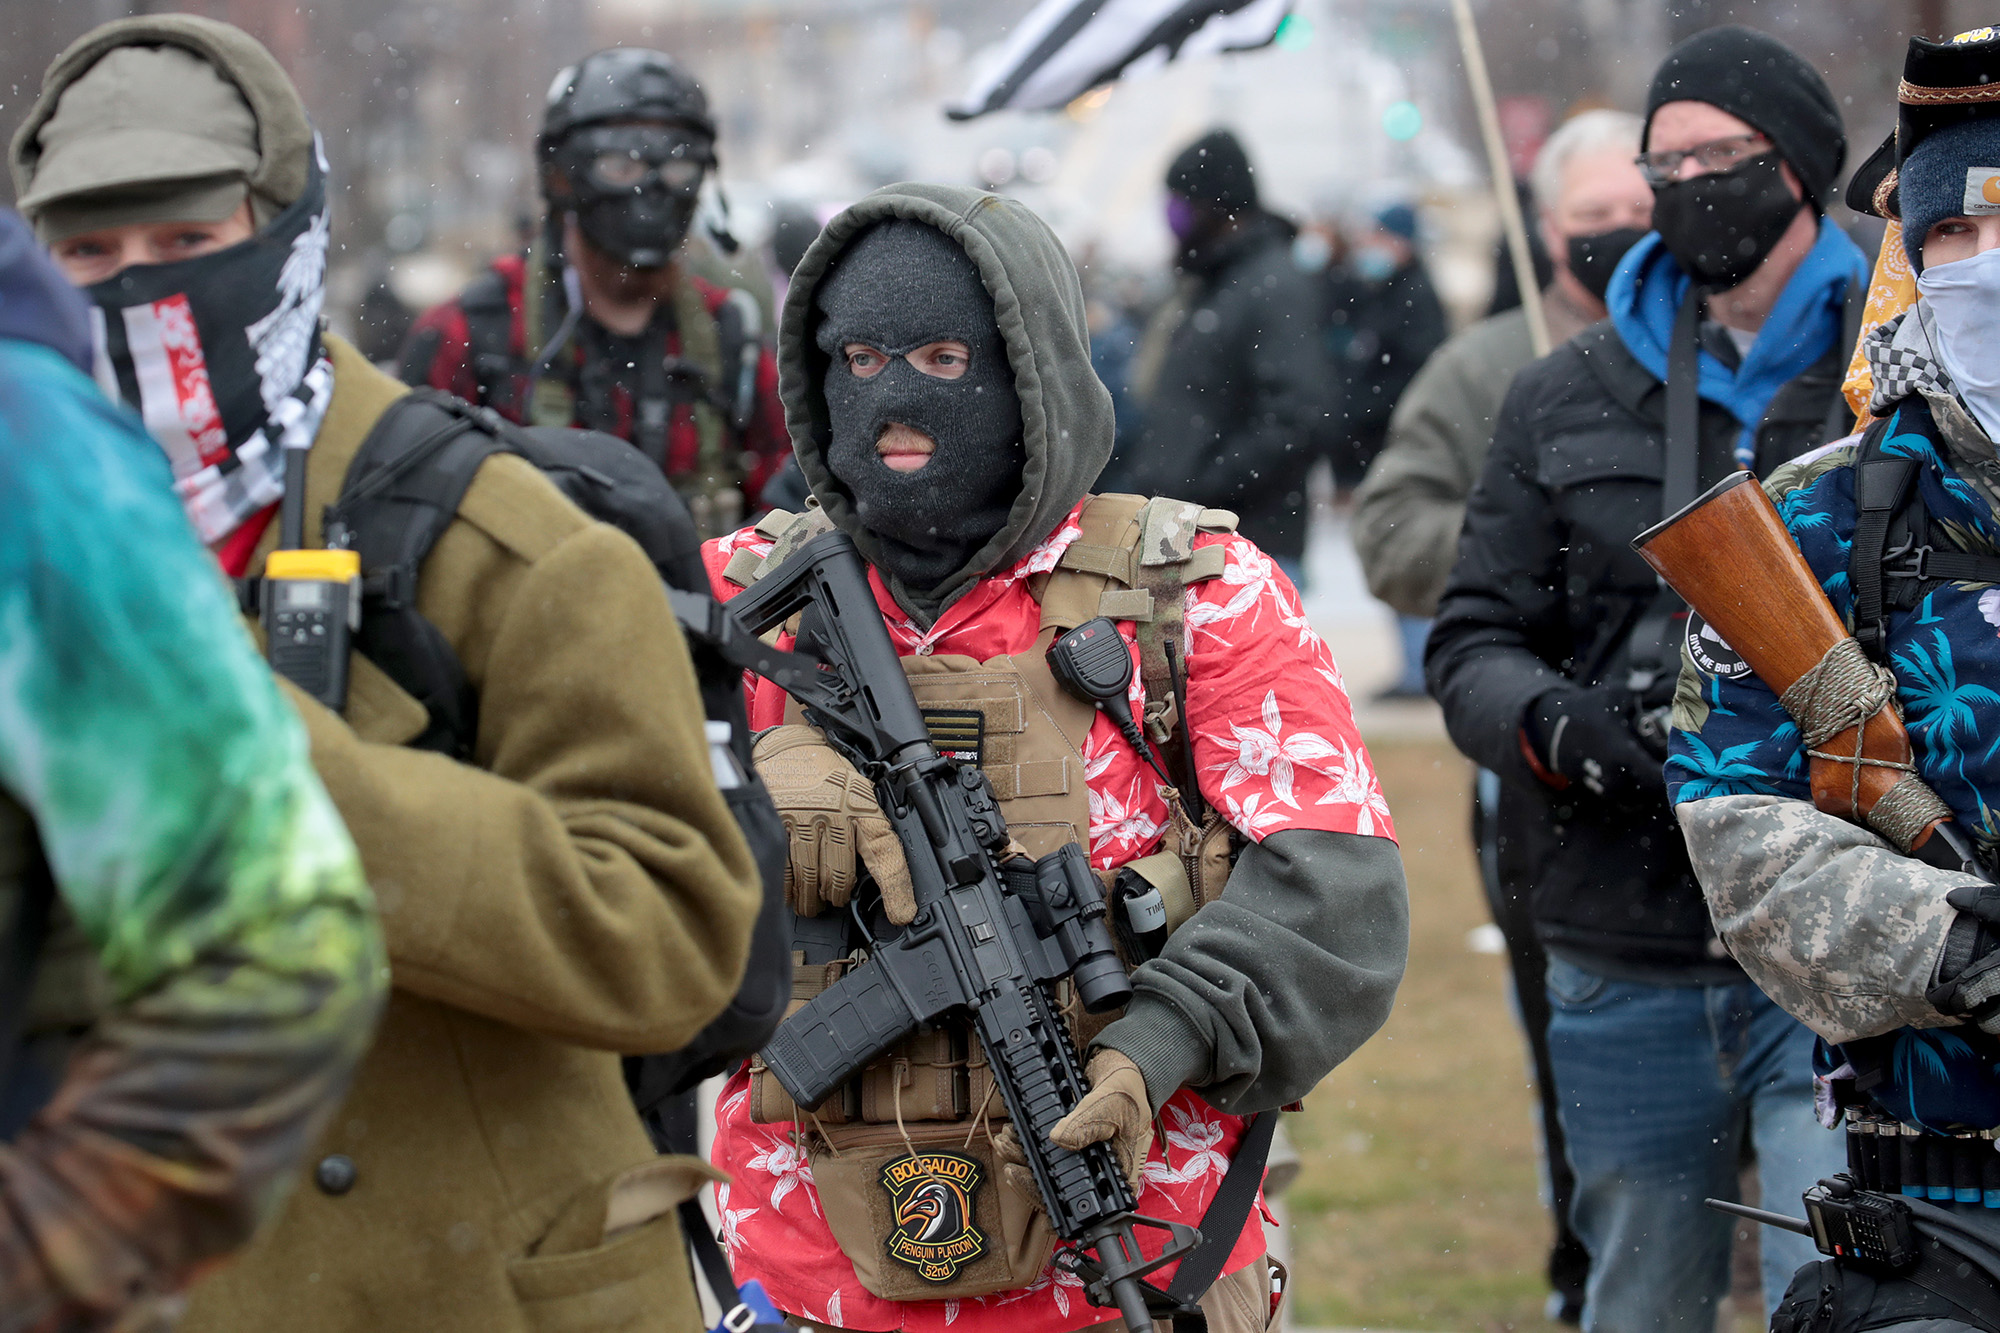 Armed protesters gather at Michigan state capitol